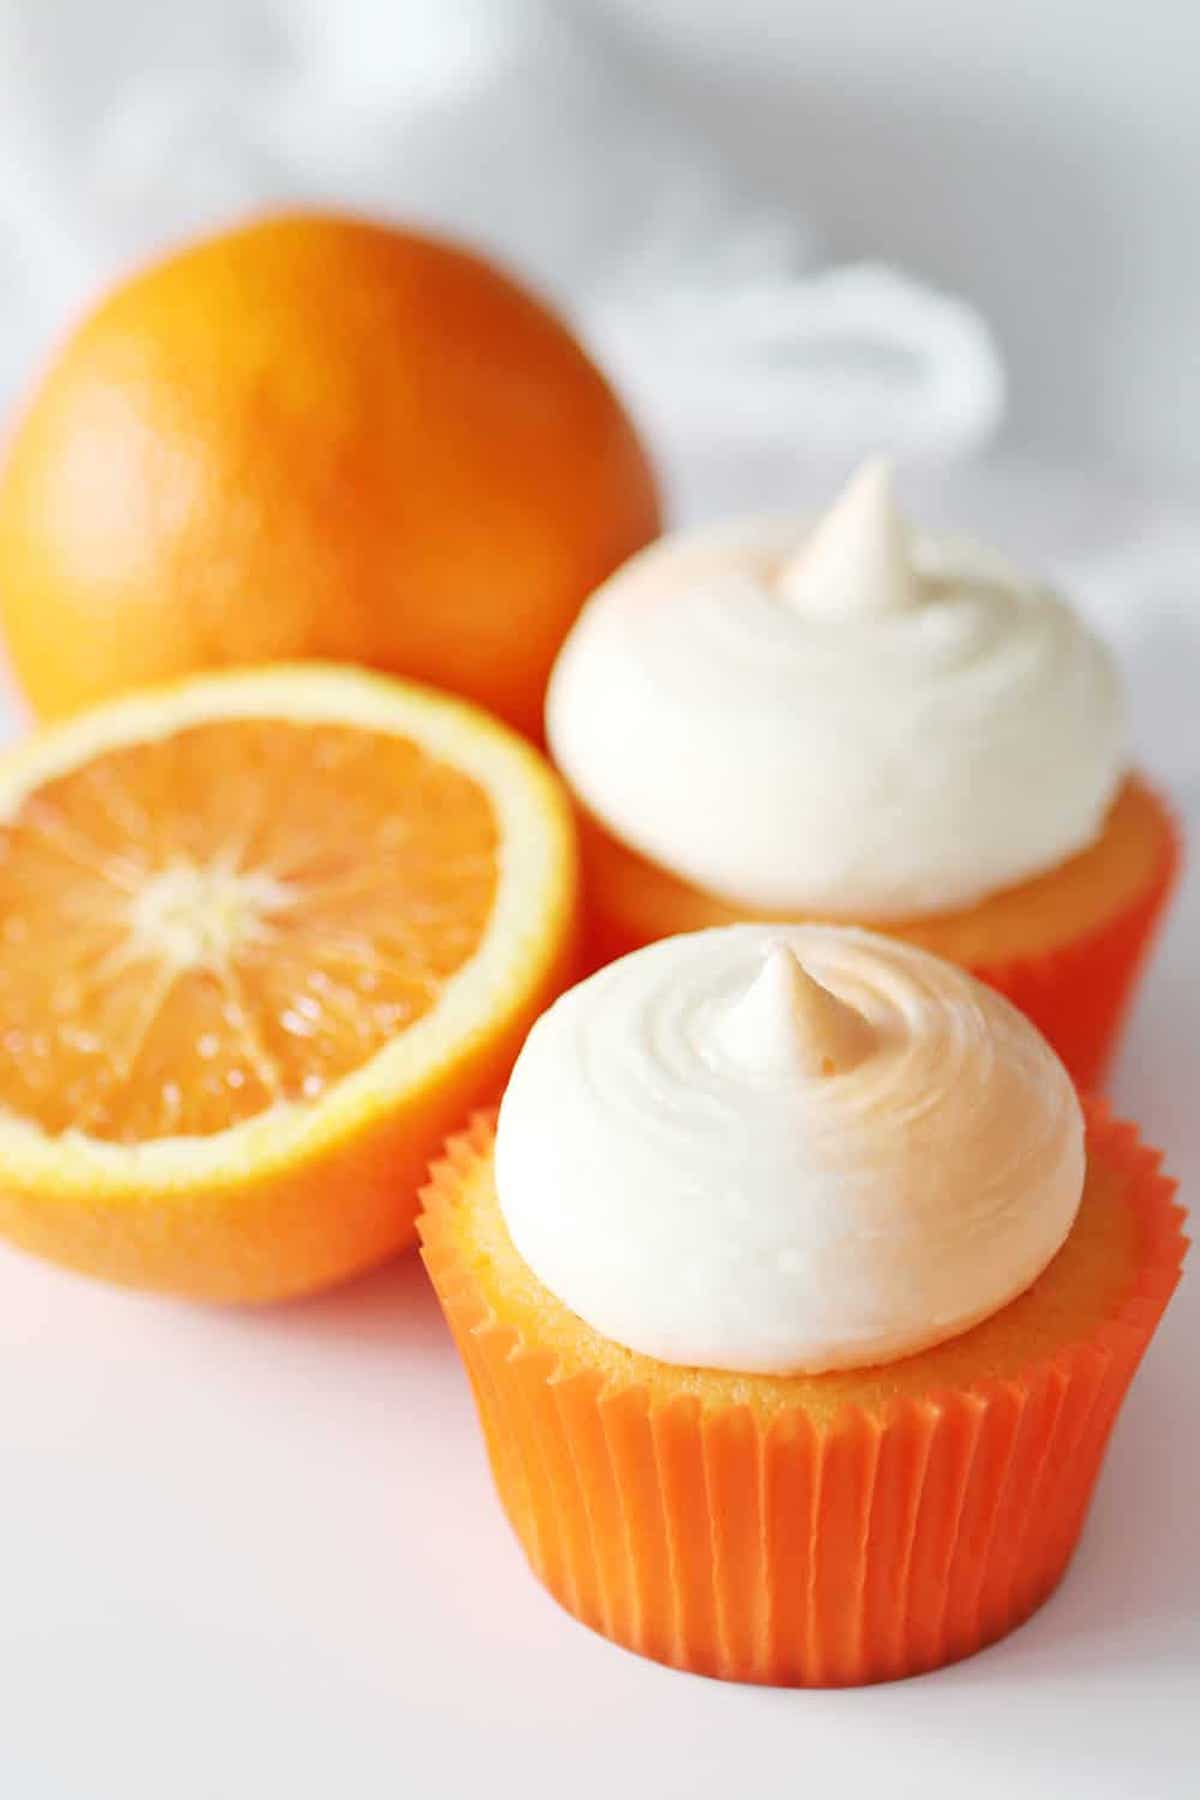 Two orange creamsicle cupcakes topped with white frosting sit on a light background next to an orange that has been sliced in half.